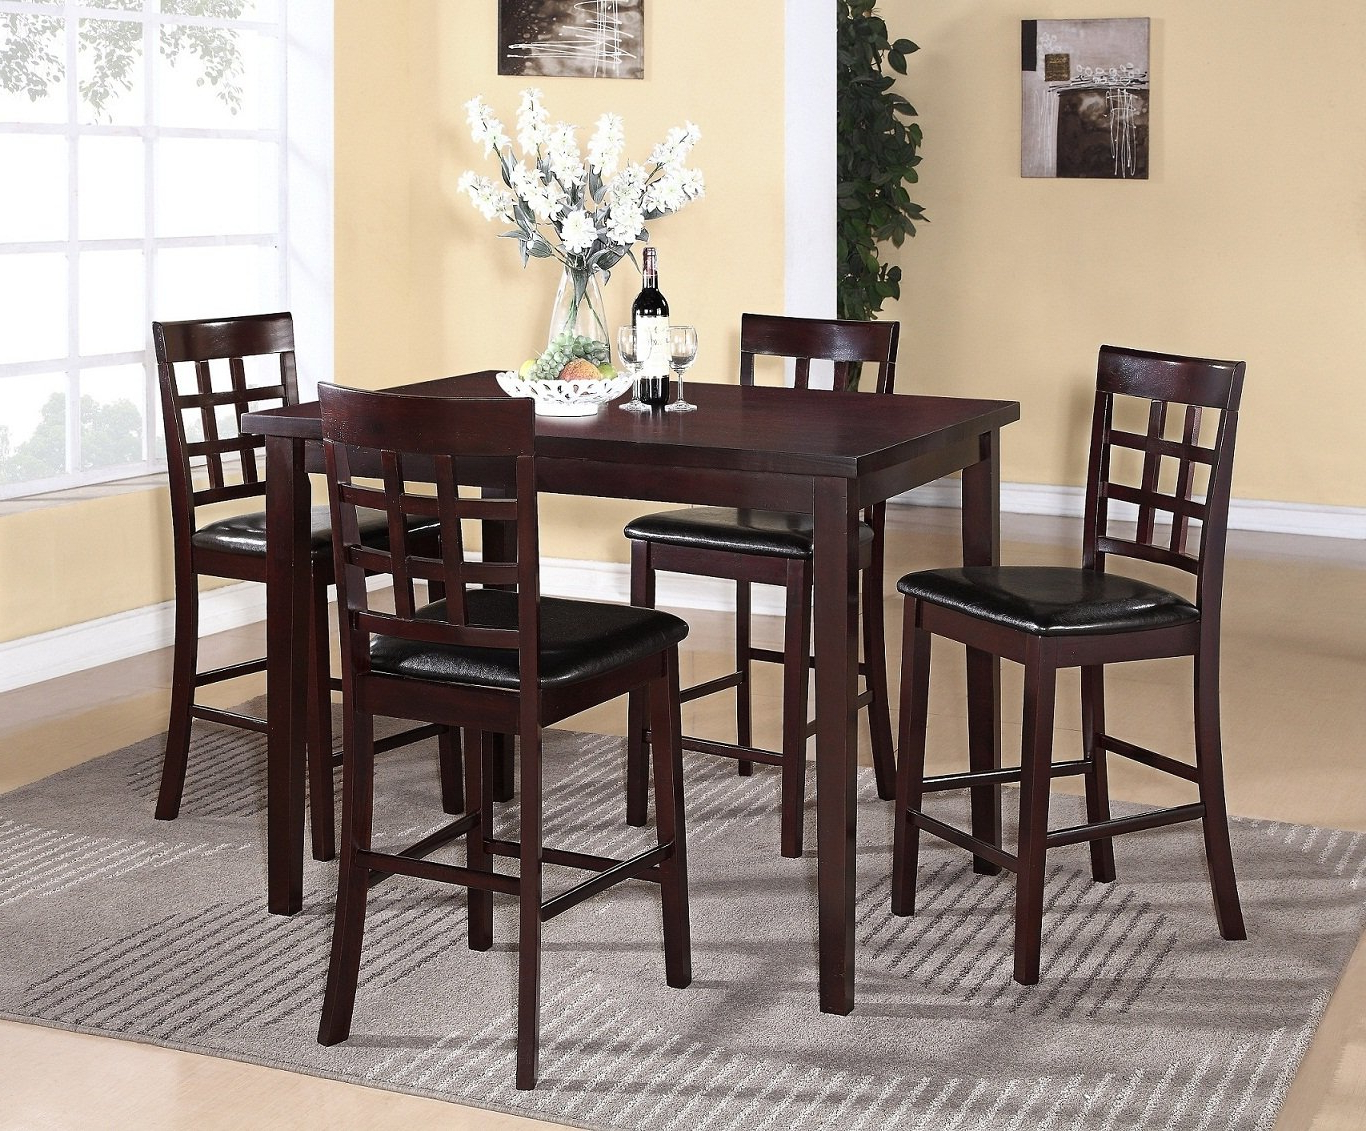 Espresso Finish Wood Classic Design Dining Tables inside Most Up-to-Date Poka 5Pc Espresso Finish Rectangle Wood Counter Height Dining Set